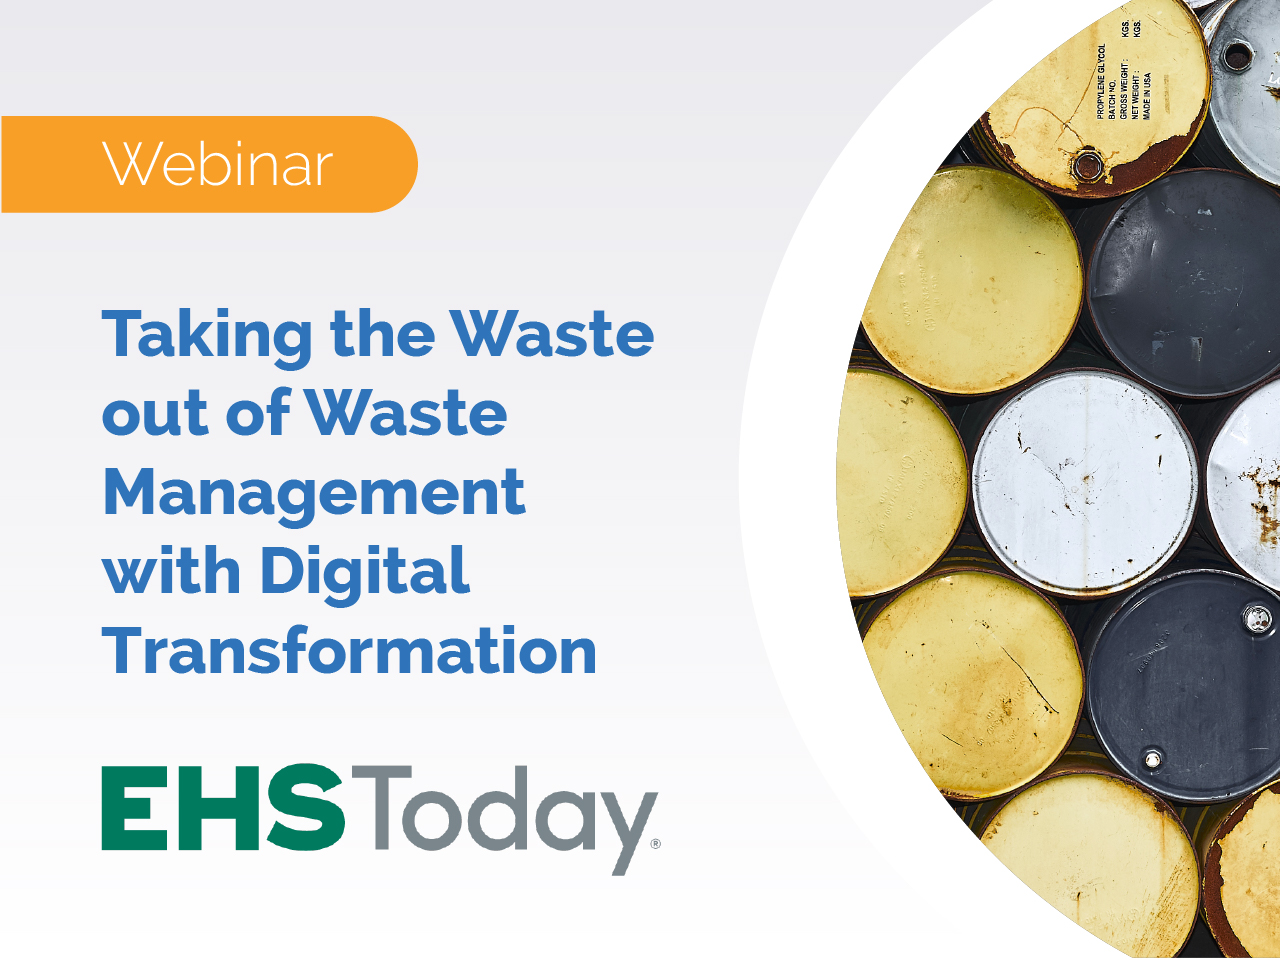 Taking_the_Waste_out_of_Waste_Management_with_Digital_Transformation